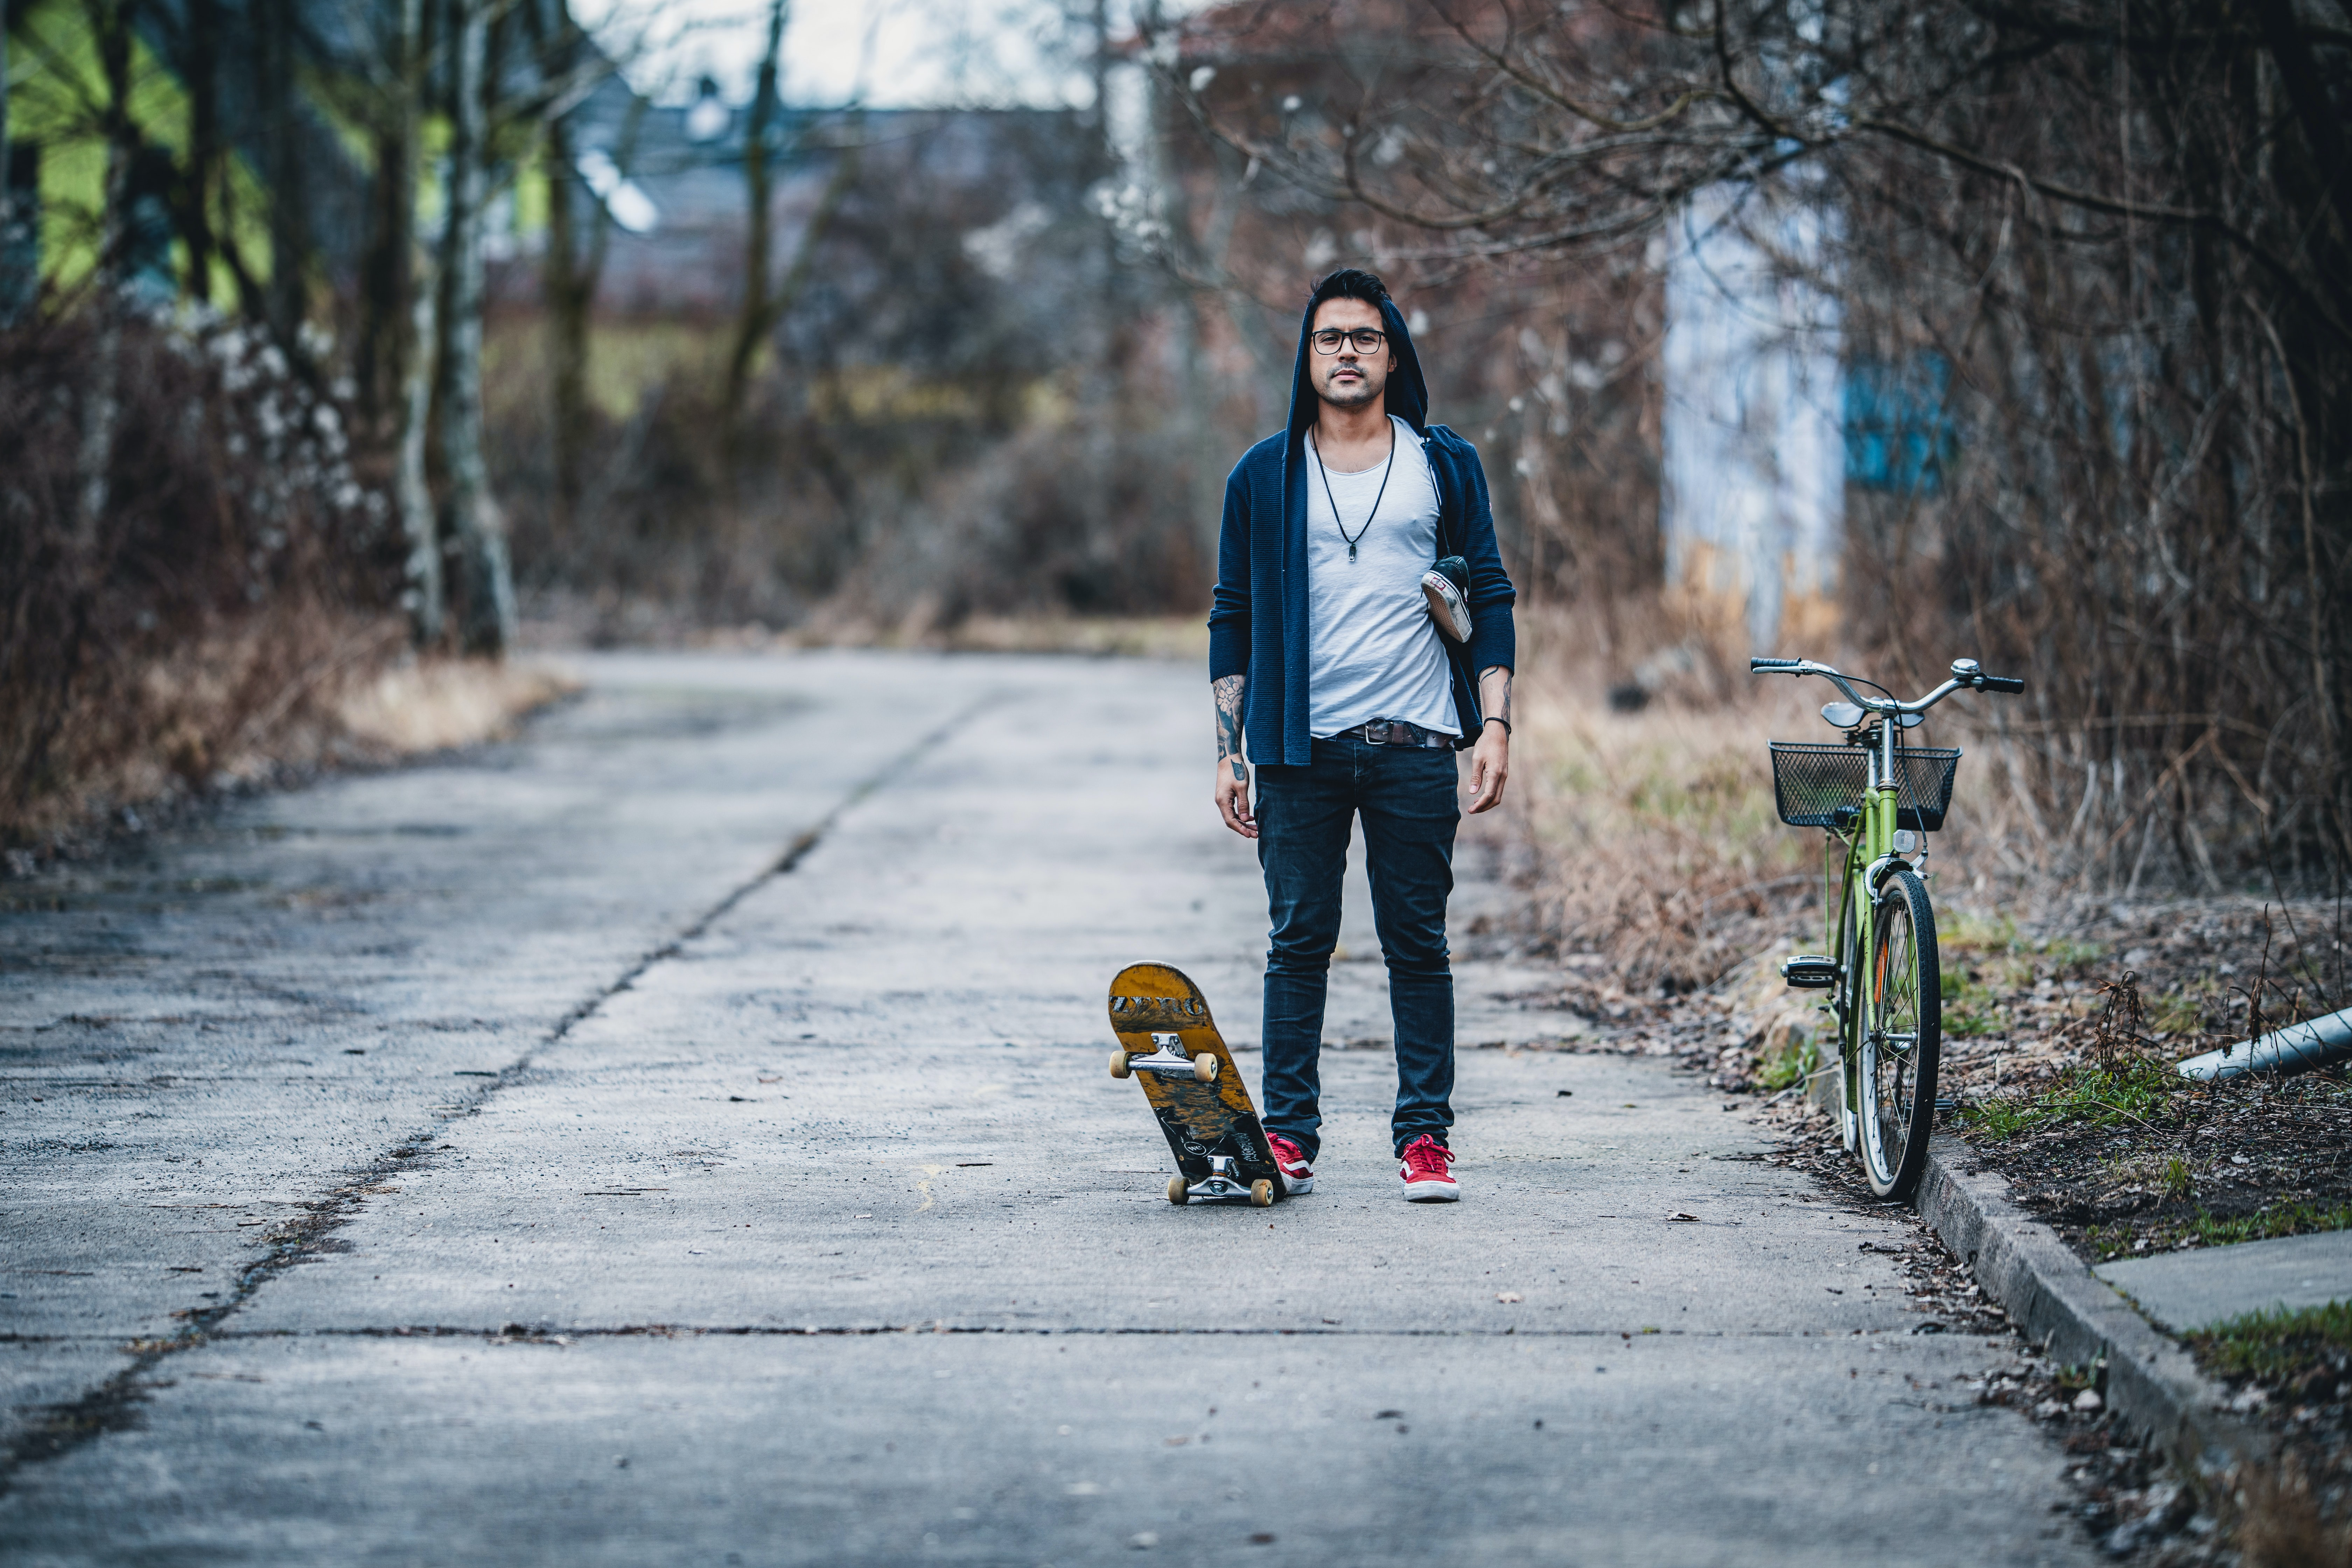 man playing a skateboard beside green city bicycle